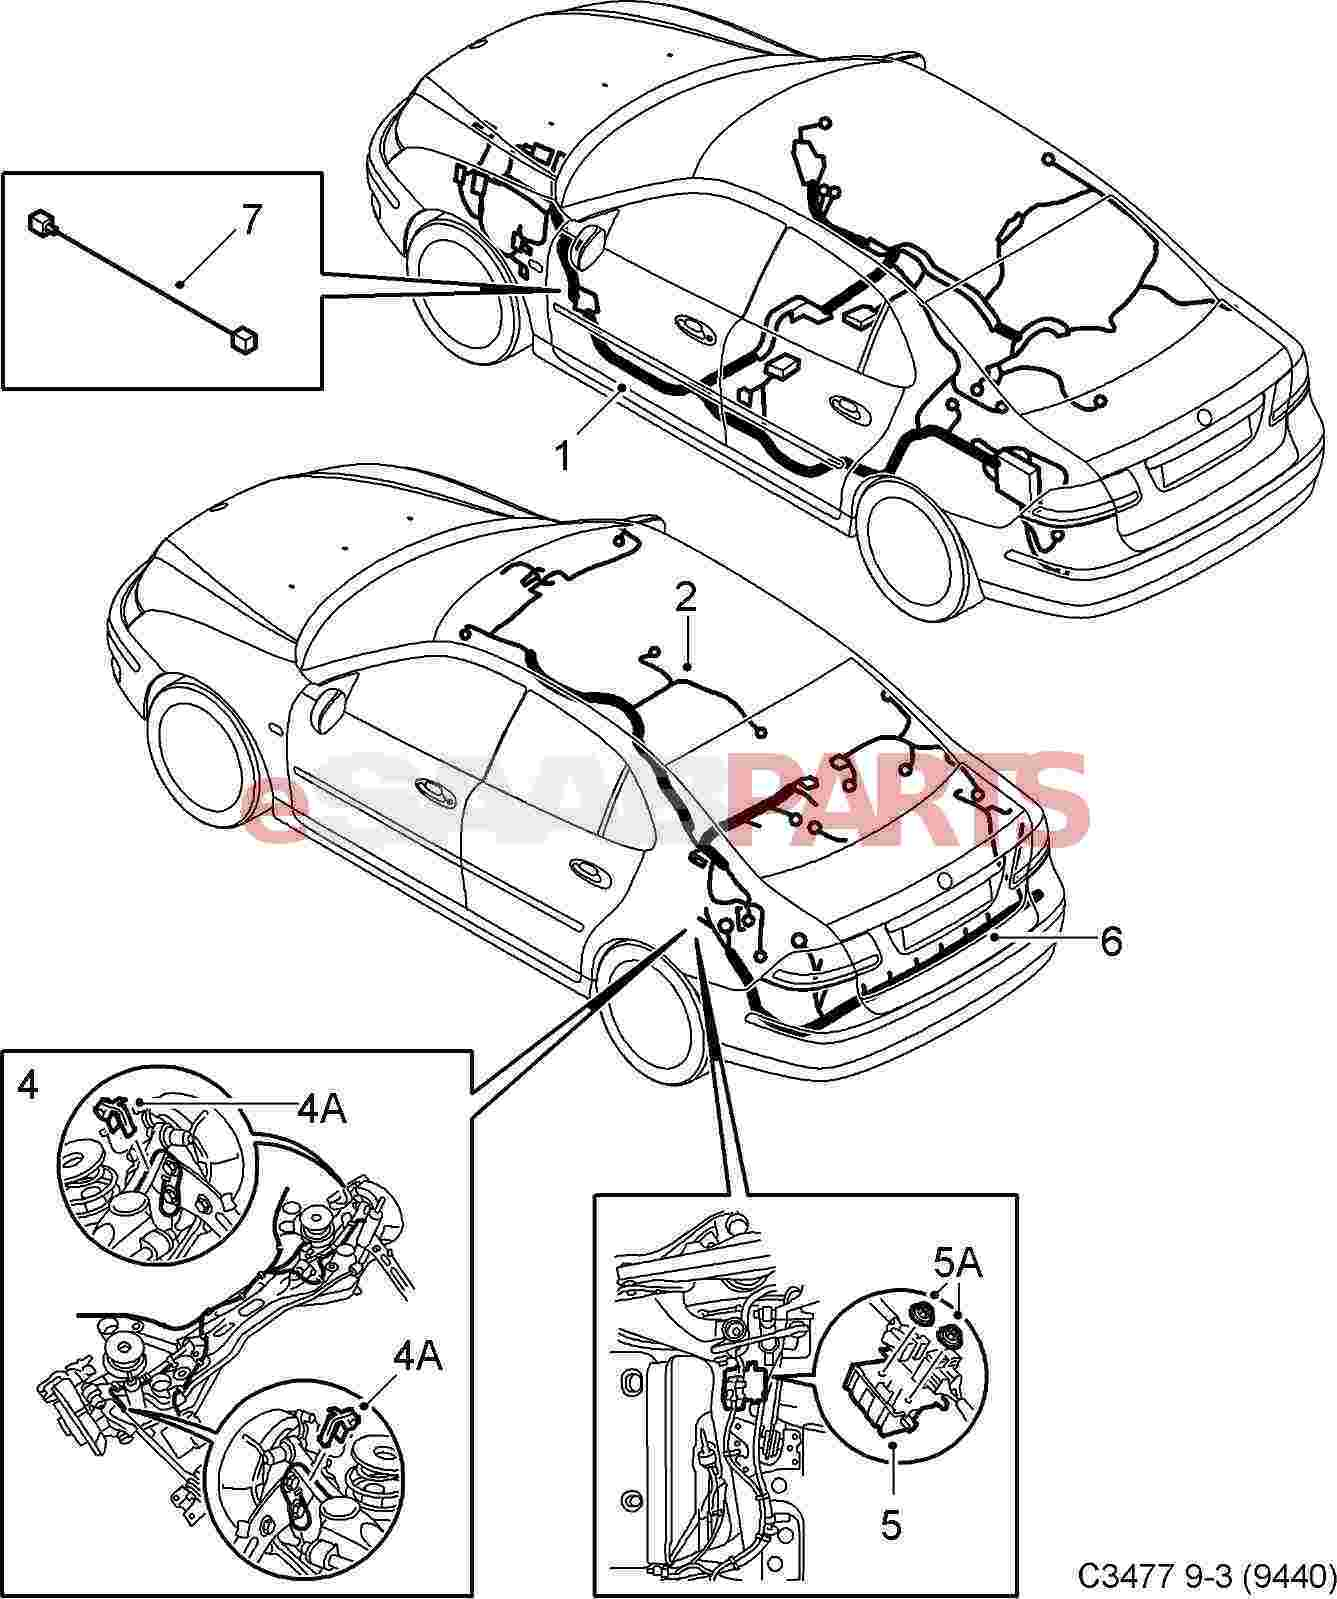 jacuzzi wiring diagram 2001 ford focus starter saab 9 7 database 12801039 optical cable genuine parts from esaabparts 2007 7x image